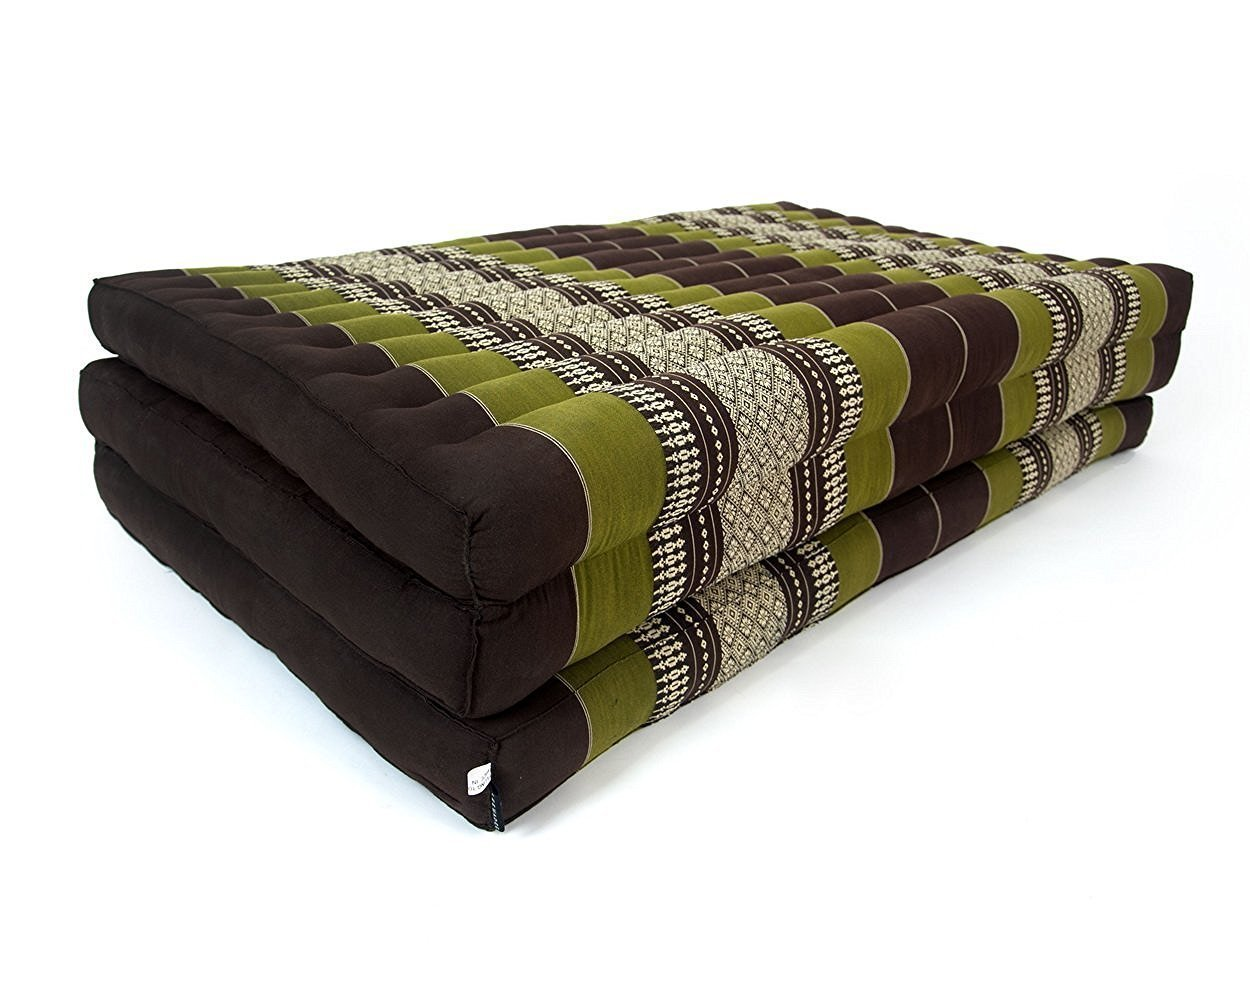 Design by UnseenThailand Thai Massage Mat, Kapok Fabric, Premium Double Stitched, 82x46x3 inches. (Brown - Green) by UnseenThailand Warehouse